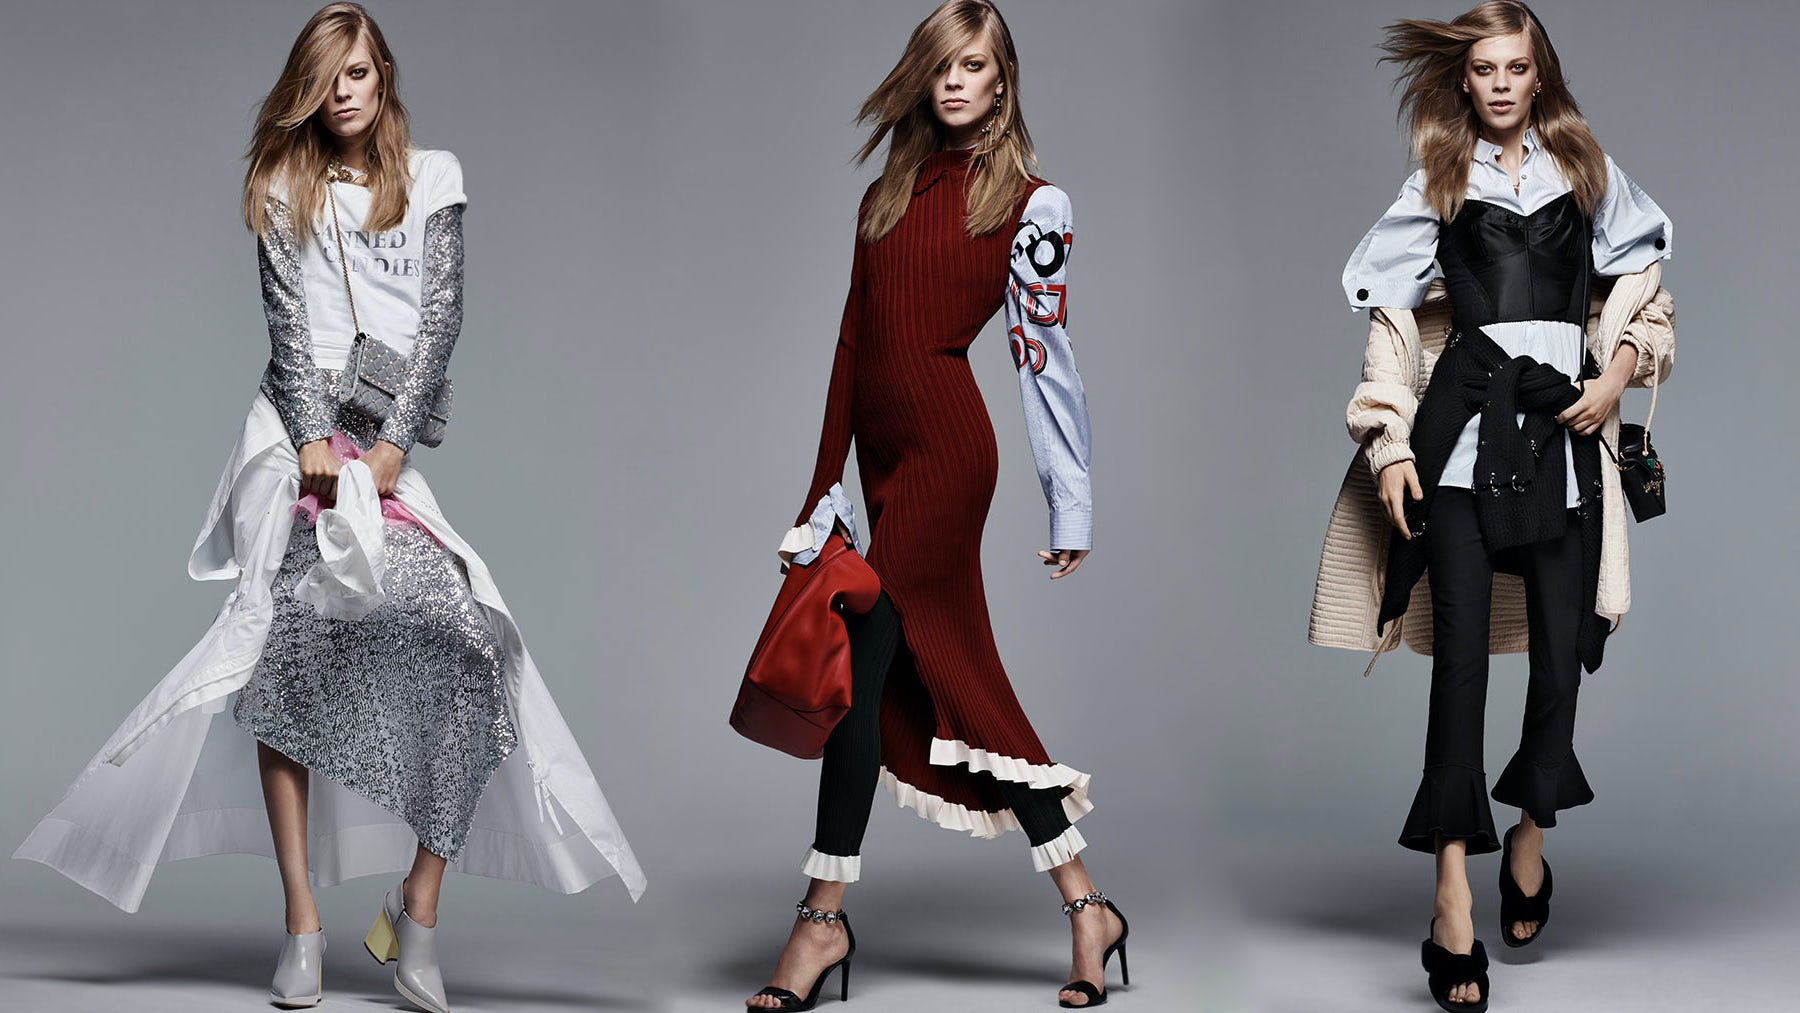 A recent Style.com campaign featuring Lexi Boling | Source: Courtesy